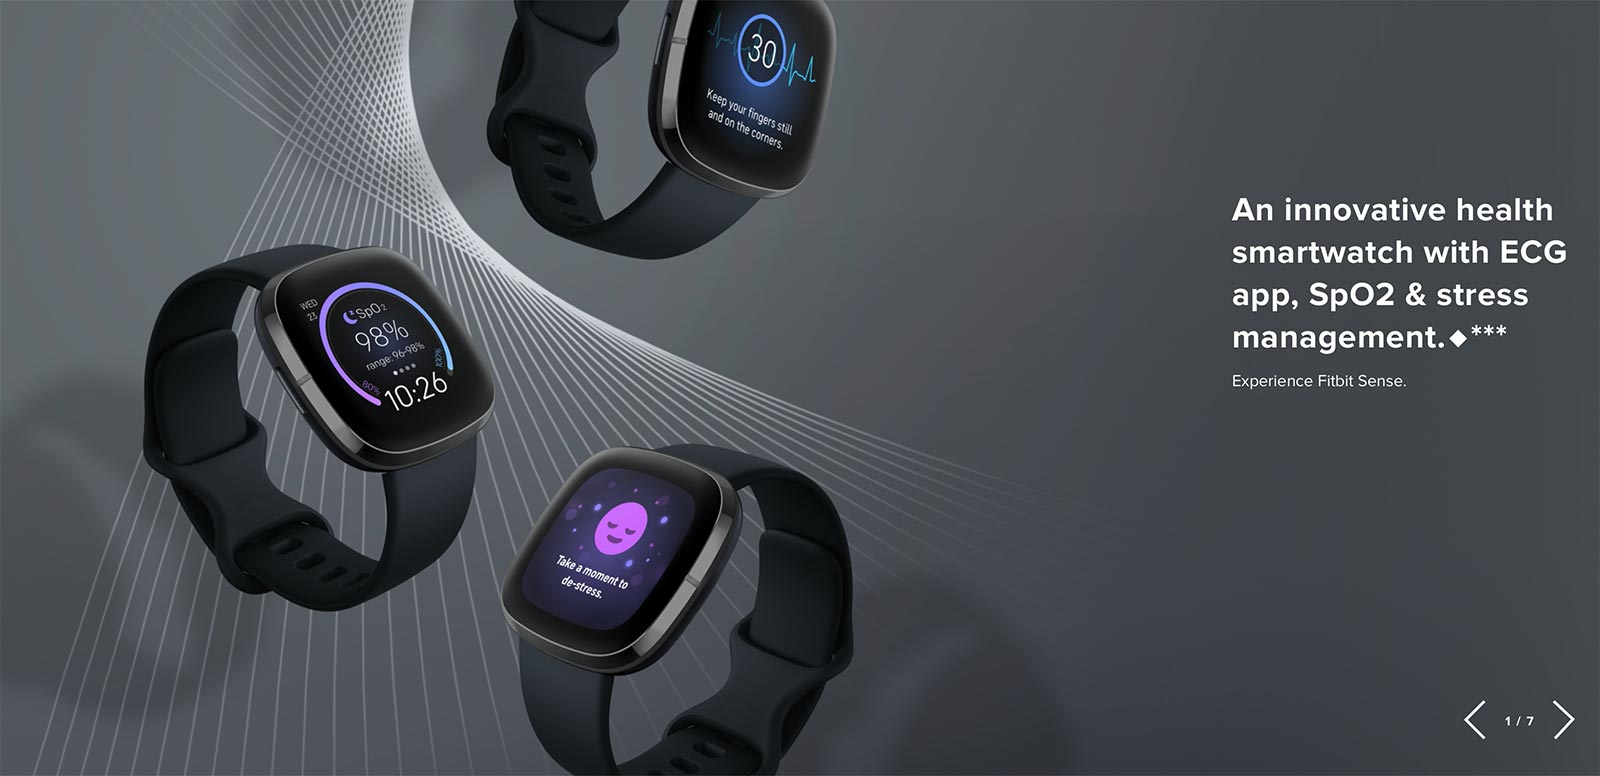 Fitbit smartwatch page, focused on medical data.